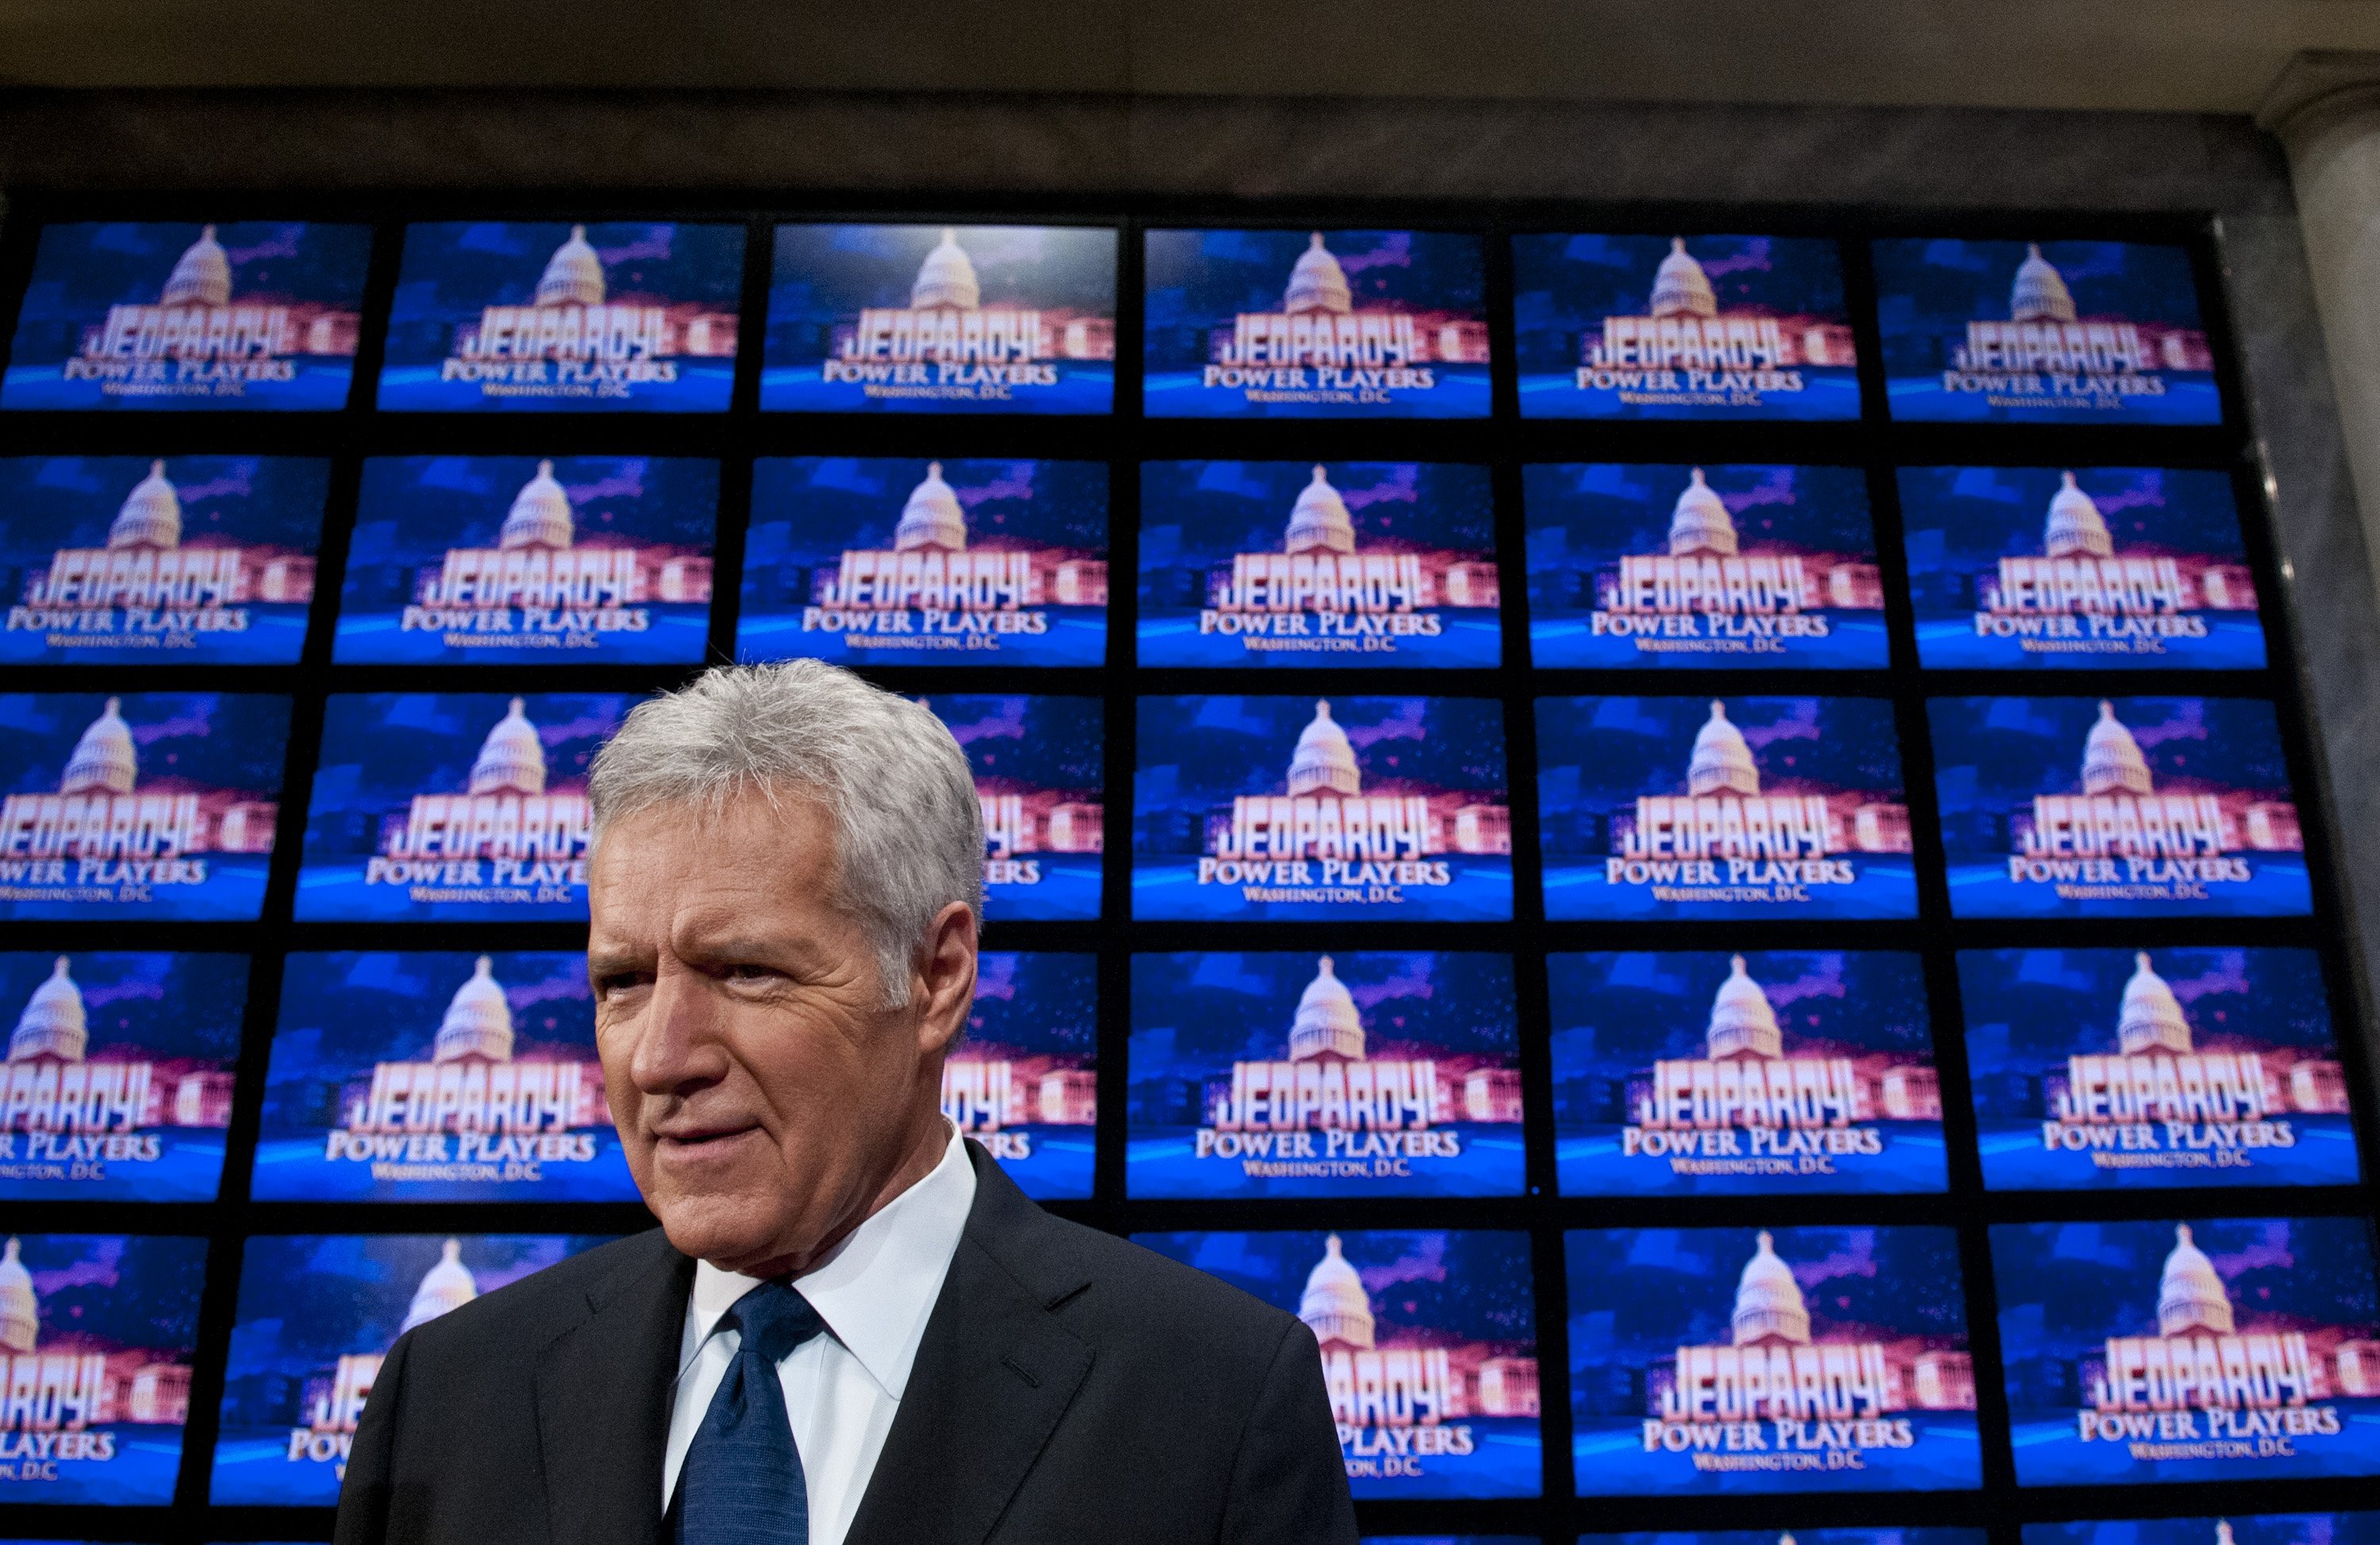 Alex Trebek speaks during a rehearsal before a taping of Jeopardy! | Photo: GettyImages